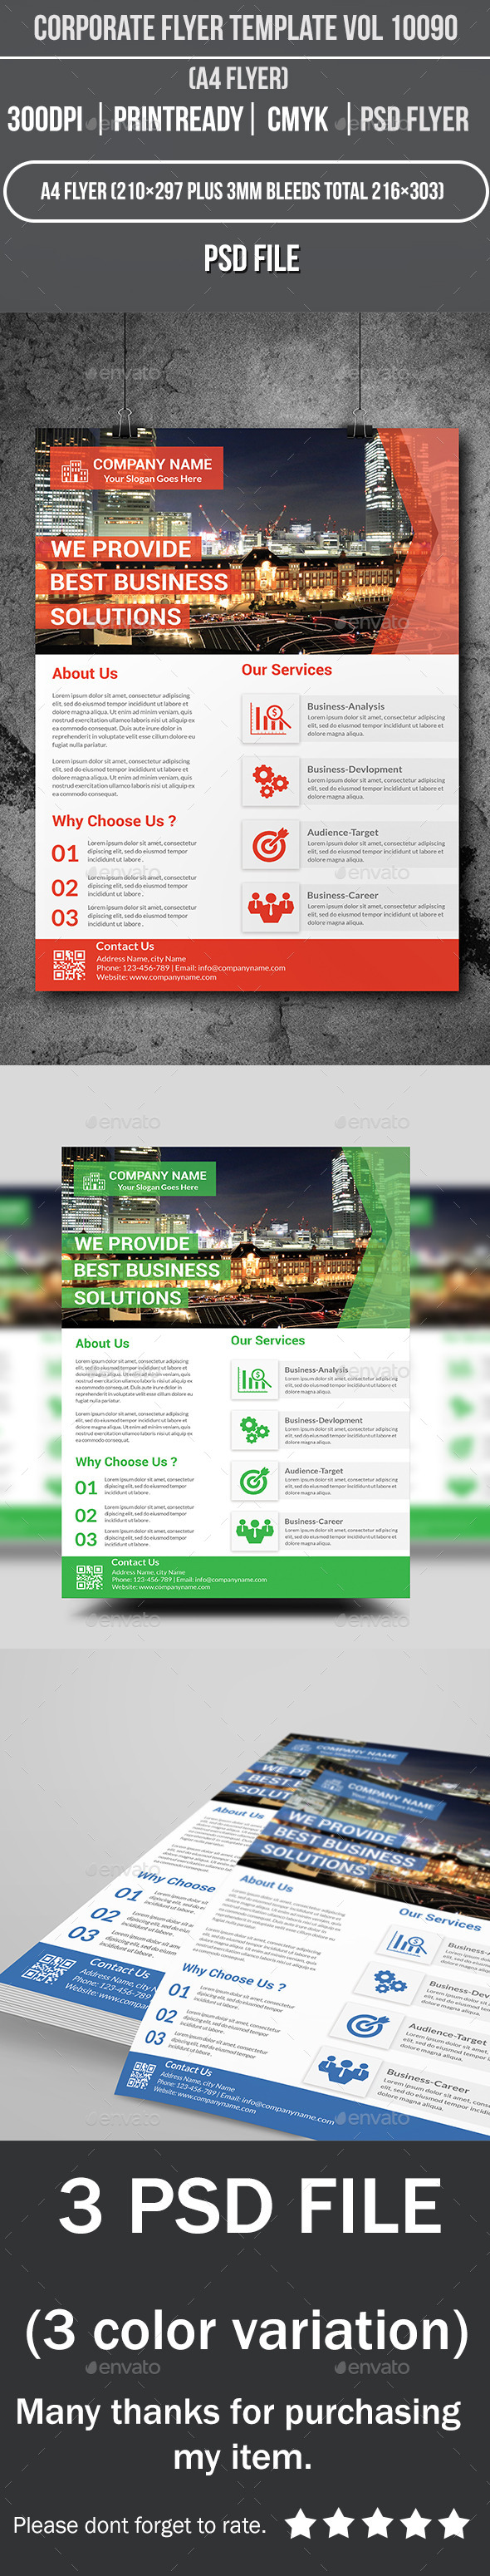 Corporate Flyer Template Vol 10090 - Corporate Flyers